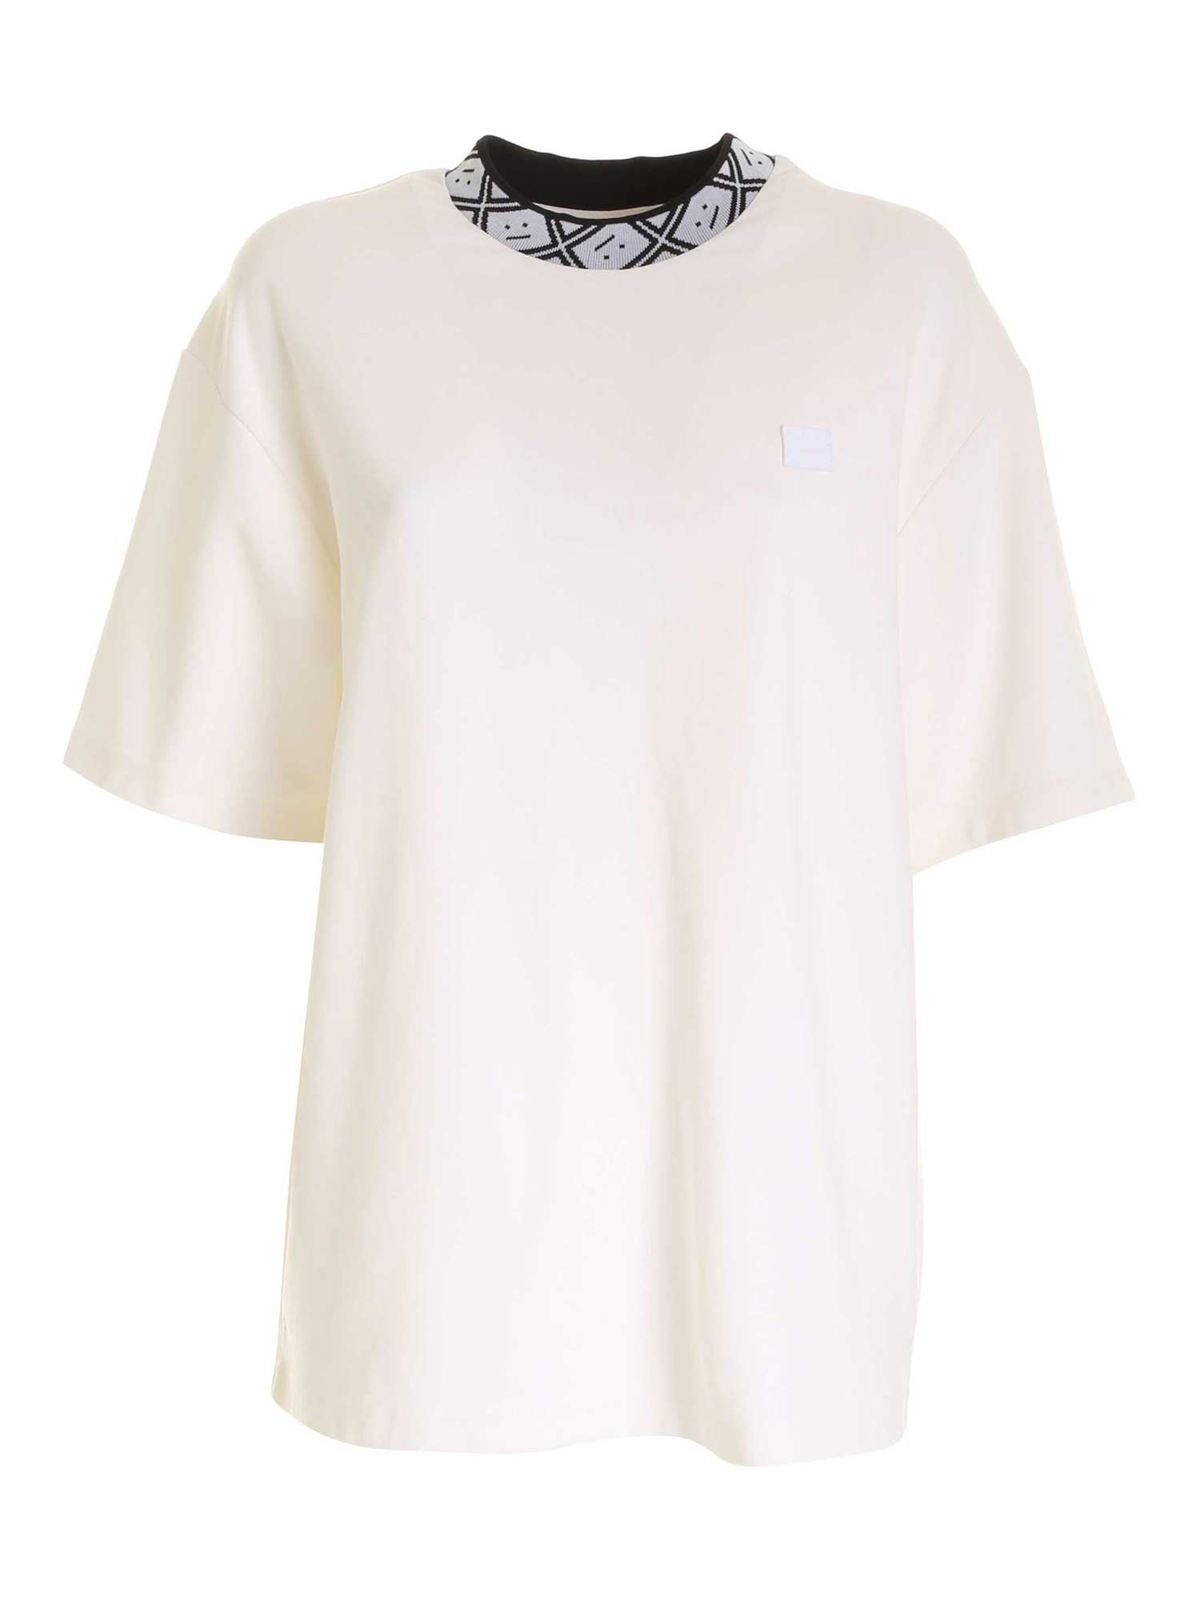 Acne Studios BRANDED COLLAR T-SHIRT IN WHITE